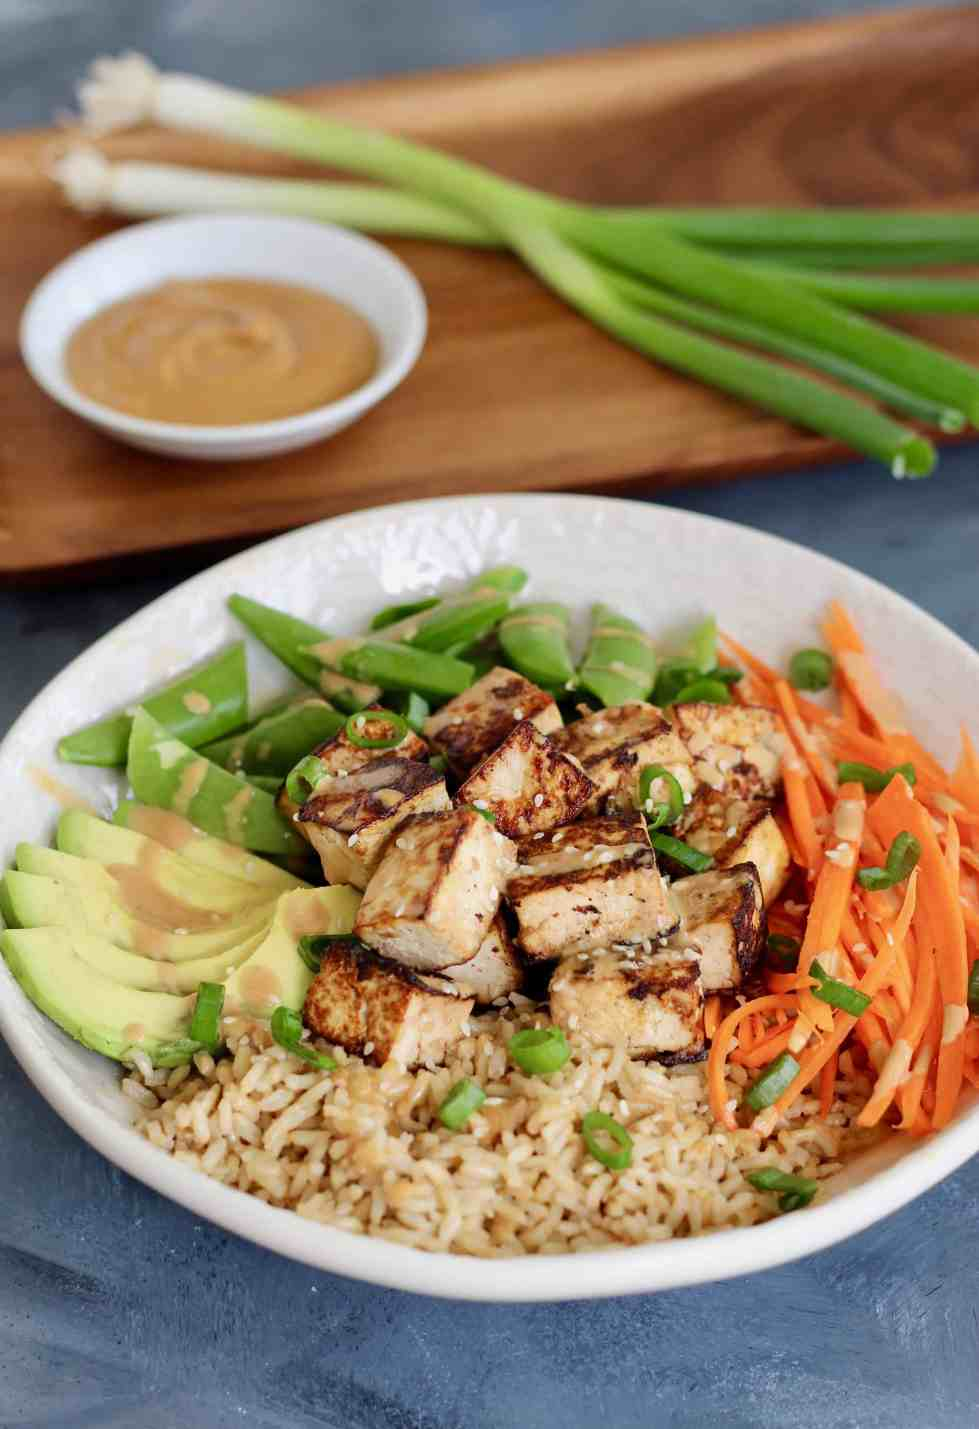 Sustainable meal bowl with tofu, vegetables and grains.